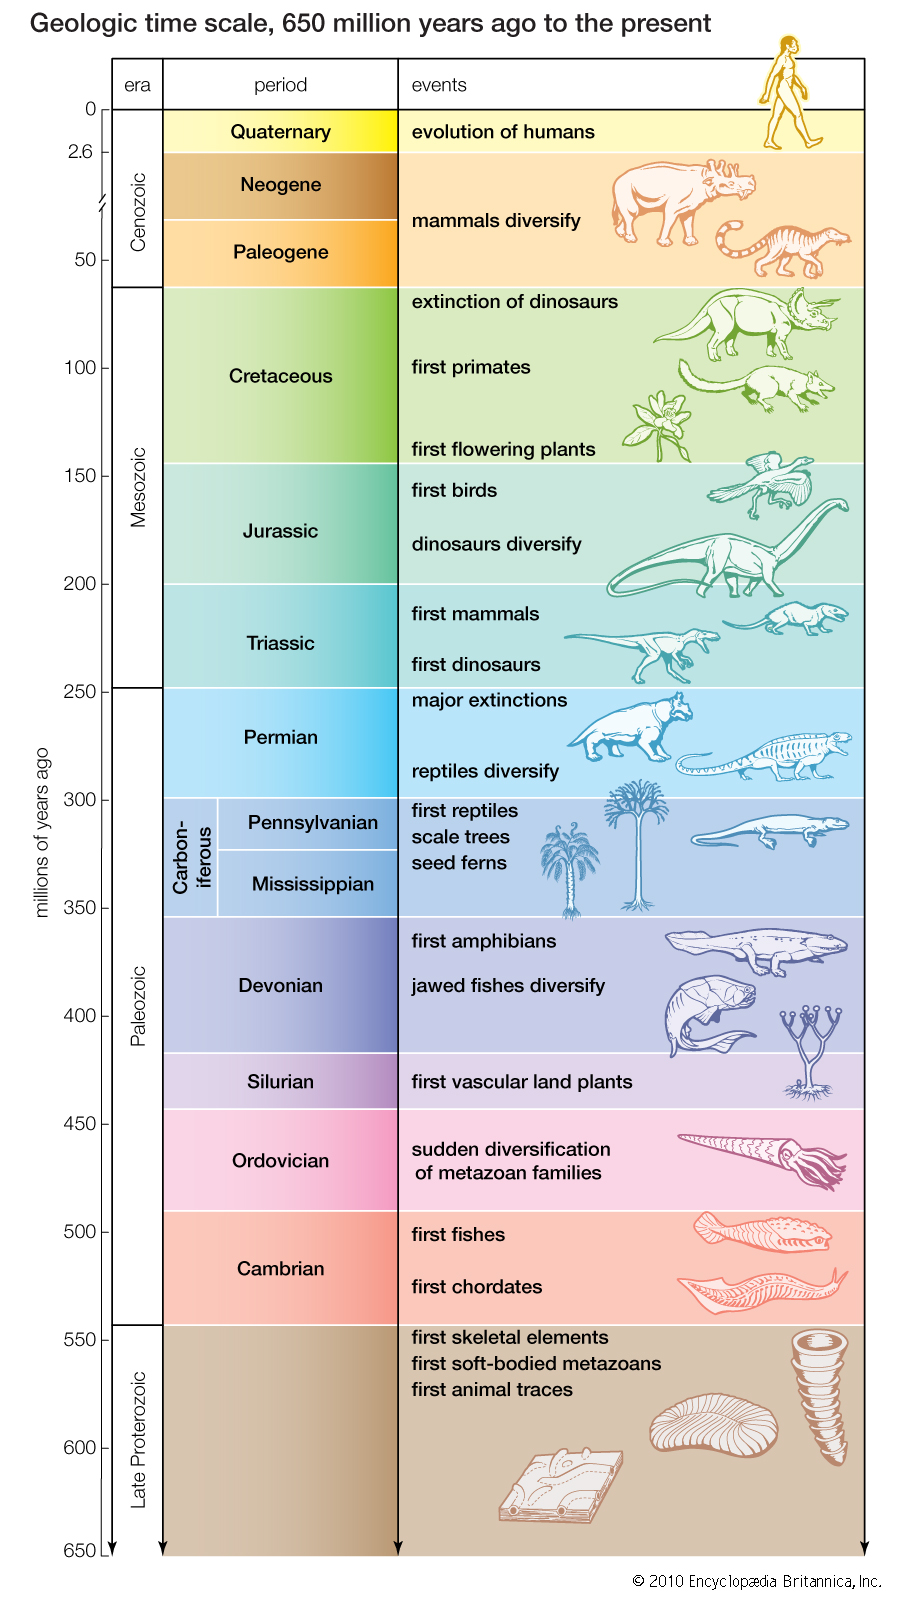 http://thedinozone.com/life-times/geological-time-scales-2/